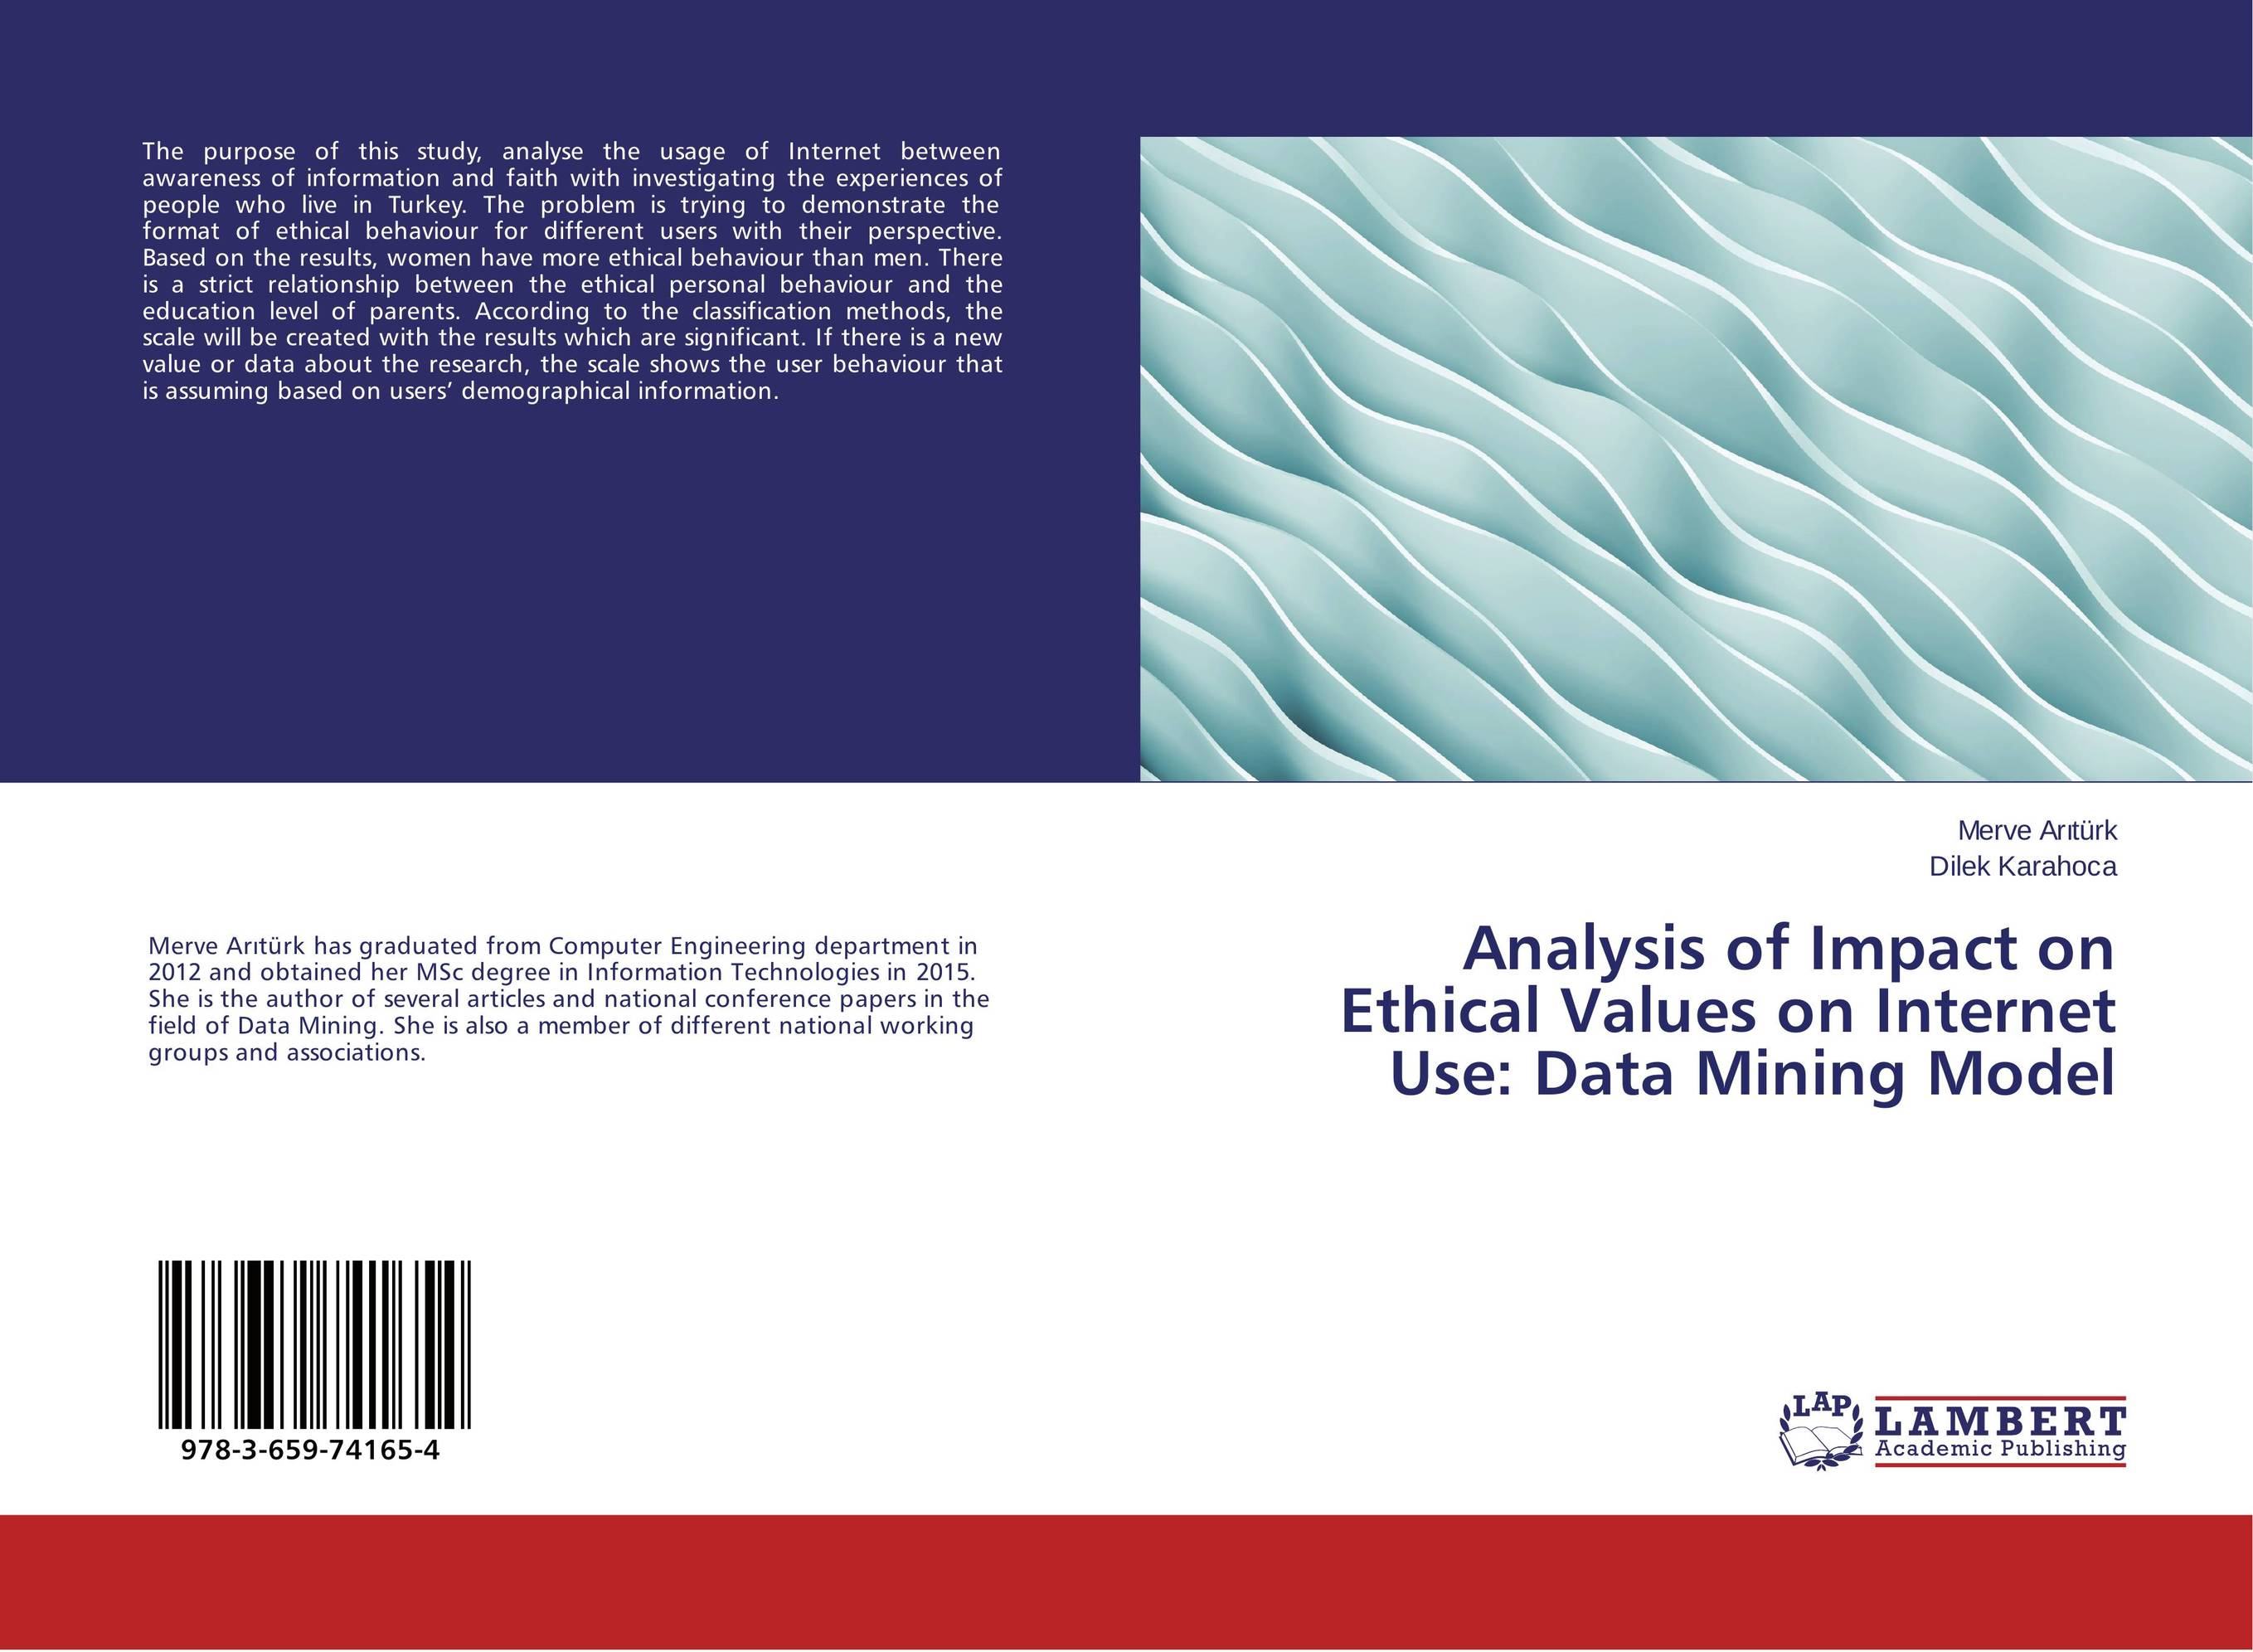 Analysis of Impact on Ethical Values on Internet Use: Data Mining Model analysis of bacterial colonization on gypsum casts